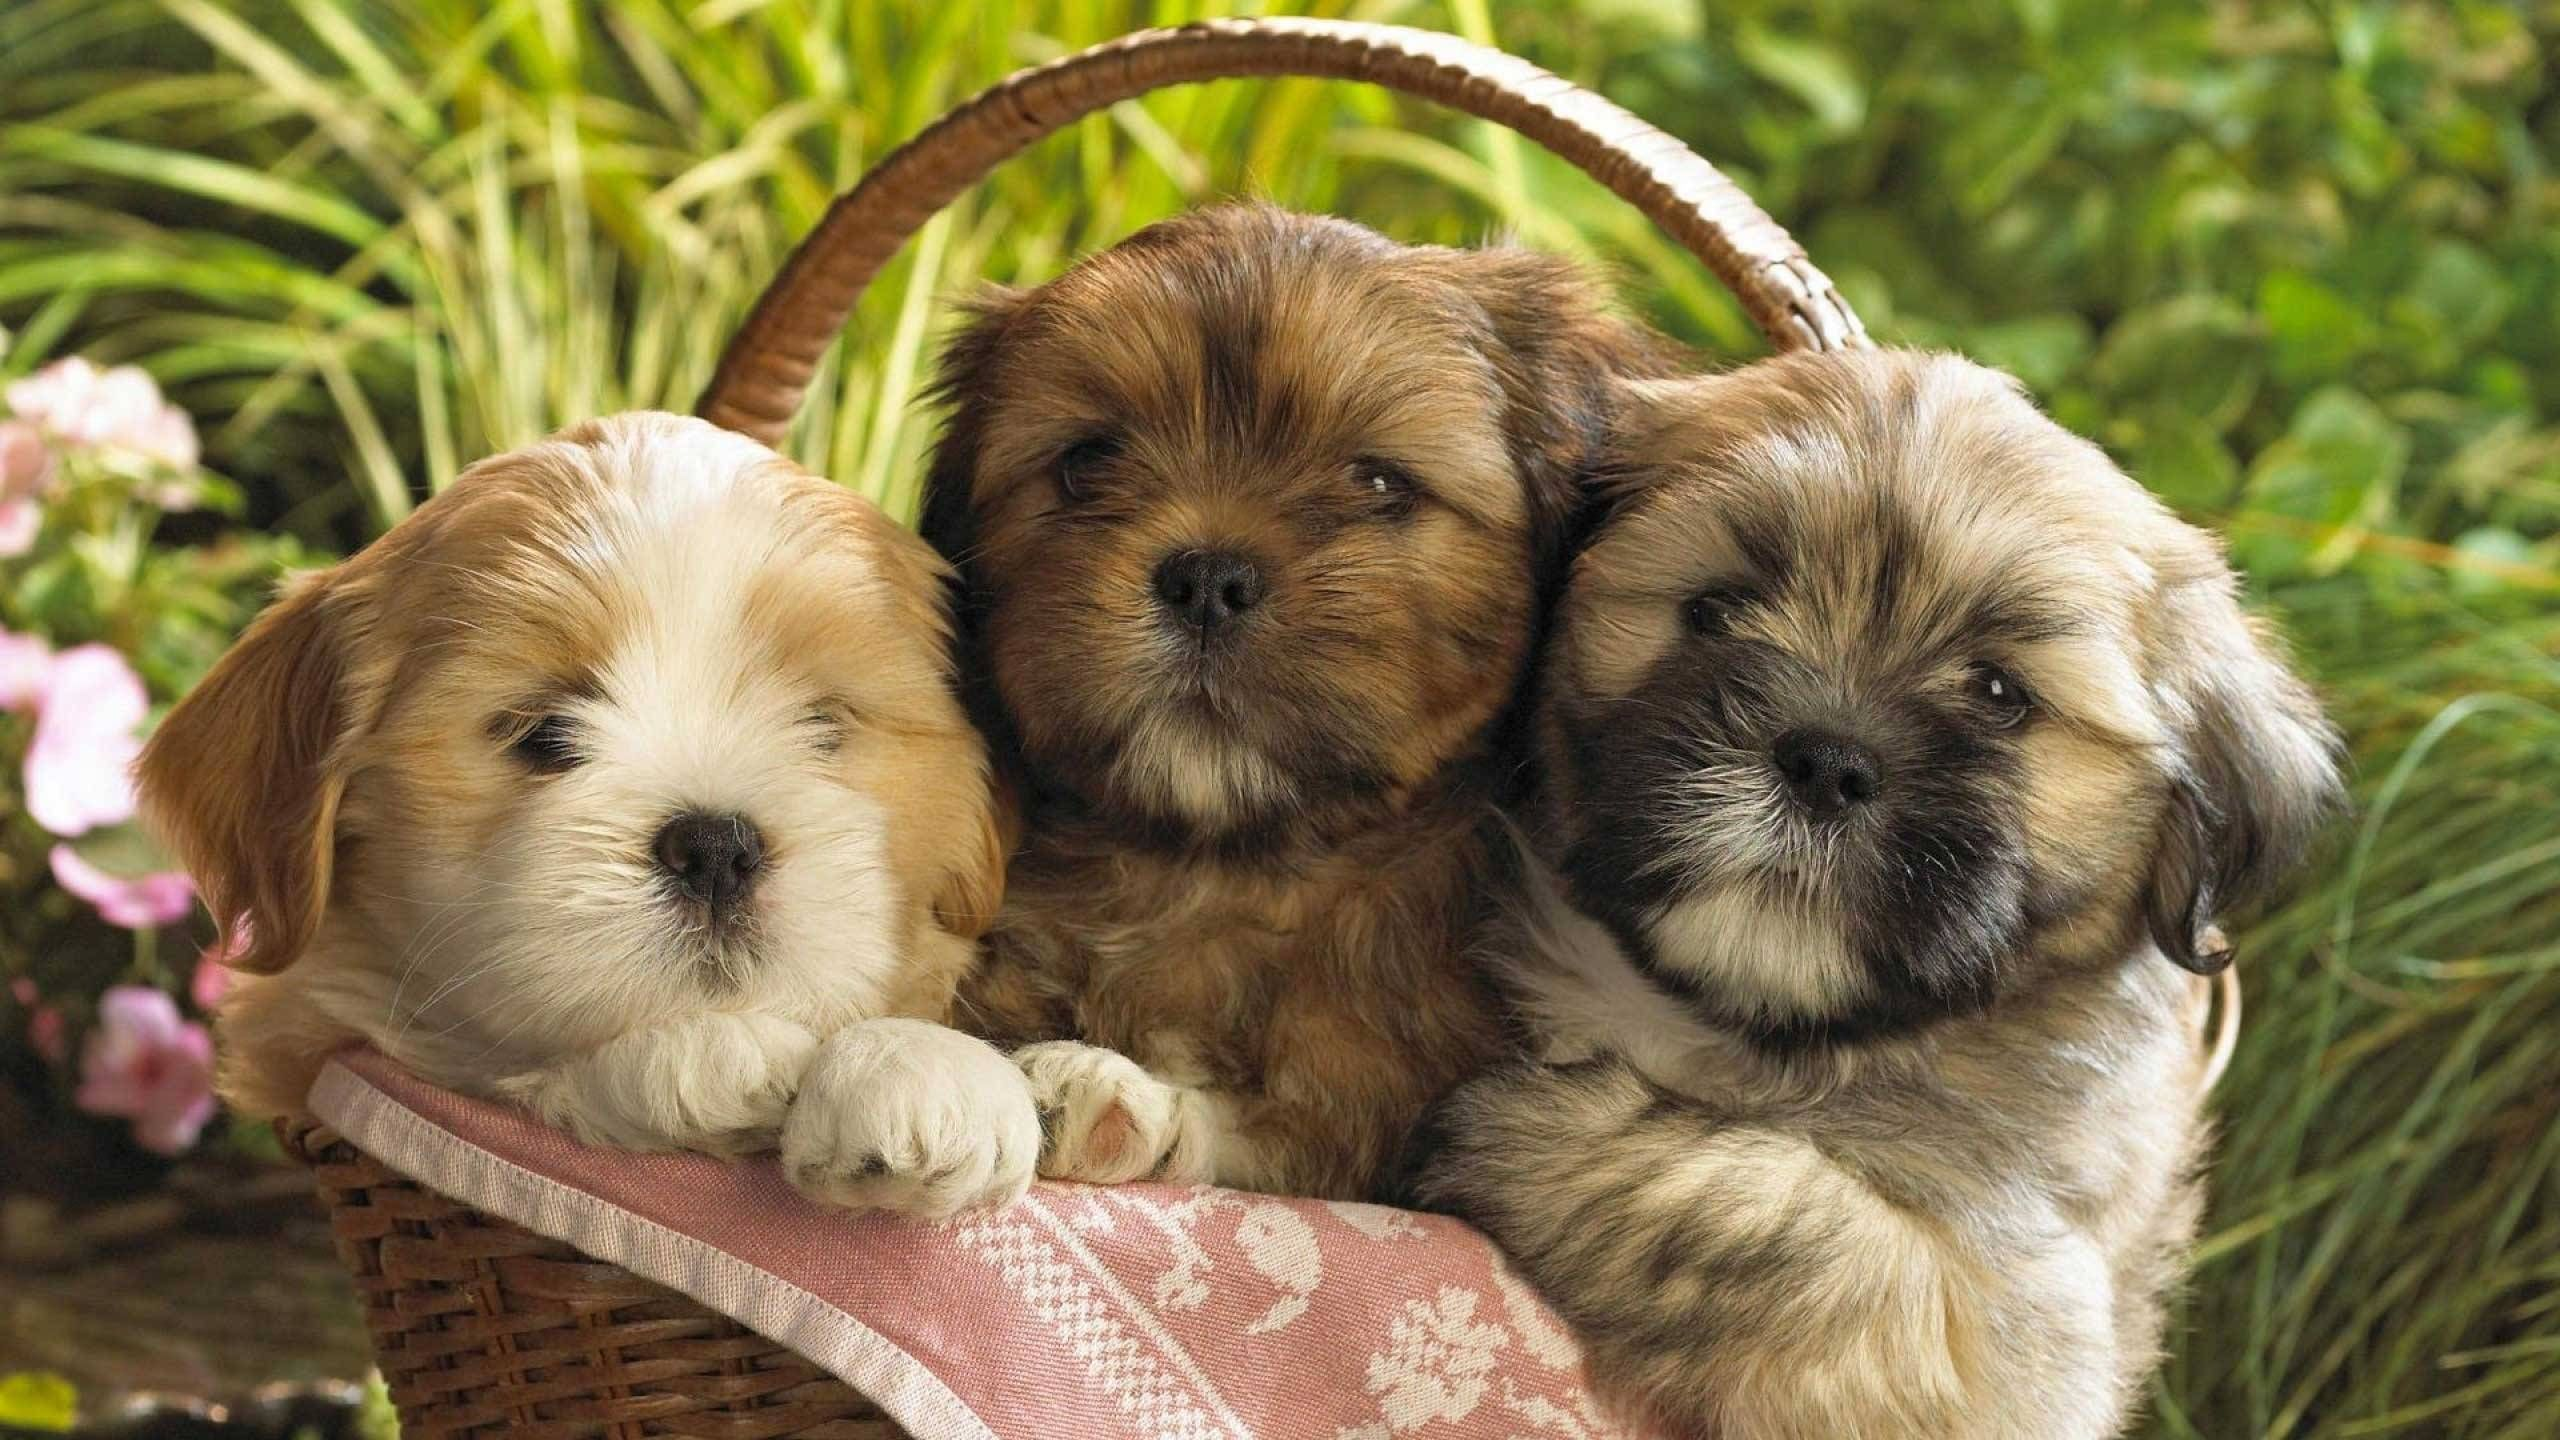 Shih Tzu Puppies Puppies Kittens Cute Puppies Puppies Dogs